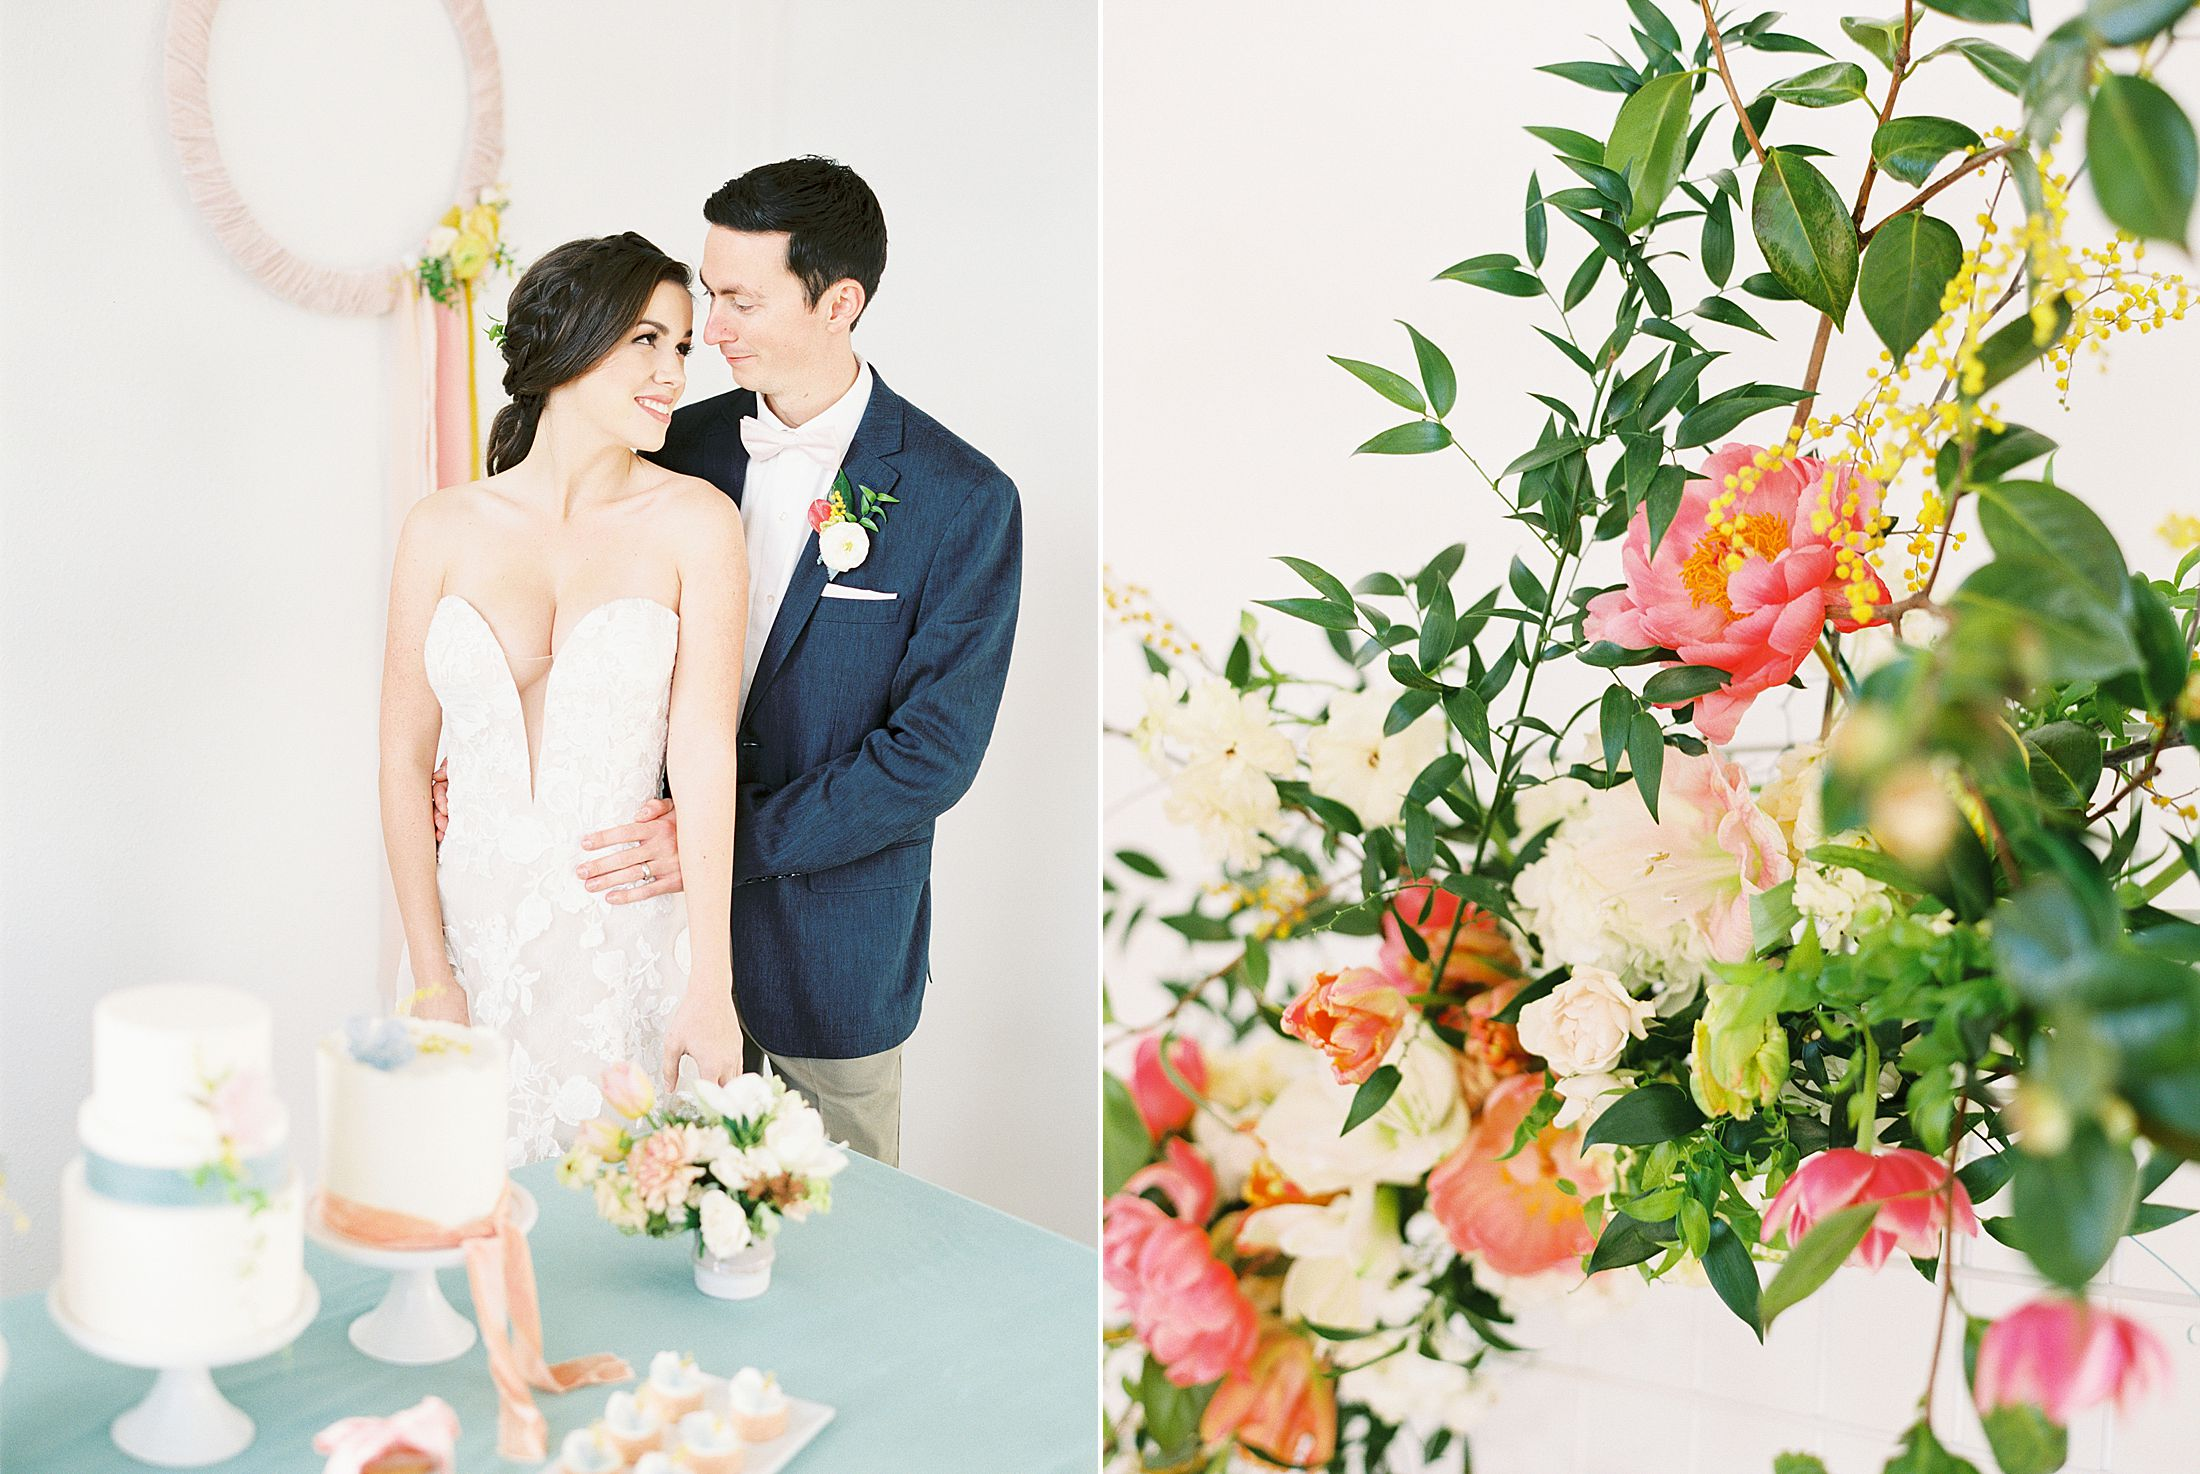 Bay Area Spring Wedding Inspiration - Ashley Baumgartner - Inspired By This - Party Crush Studio and Lens of Lenox Videography - Bay Area Wedding Photography_0033.jpg